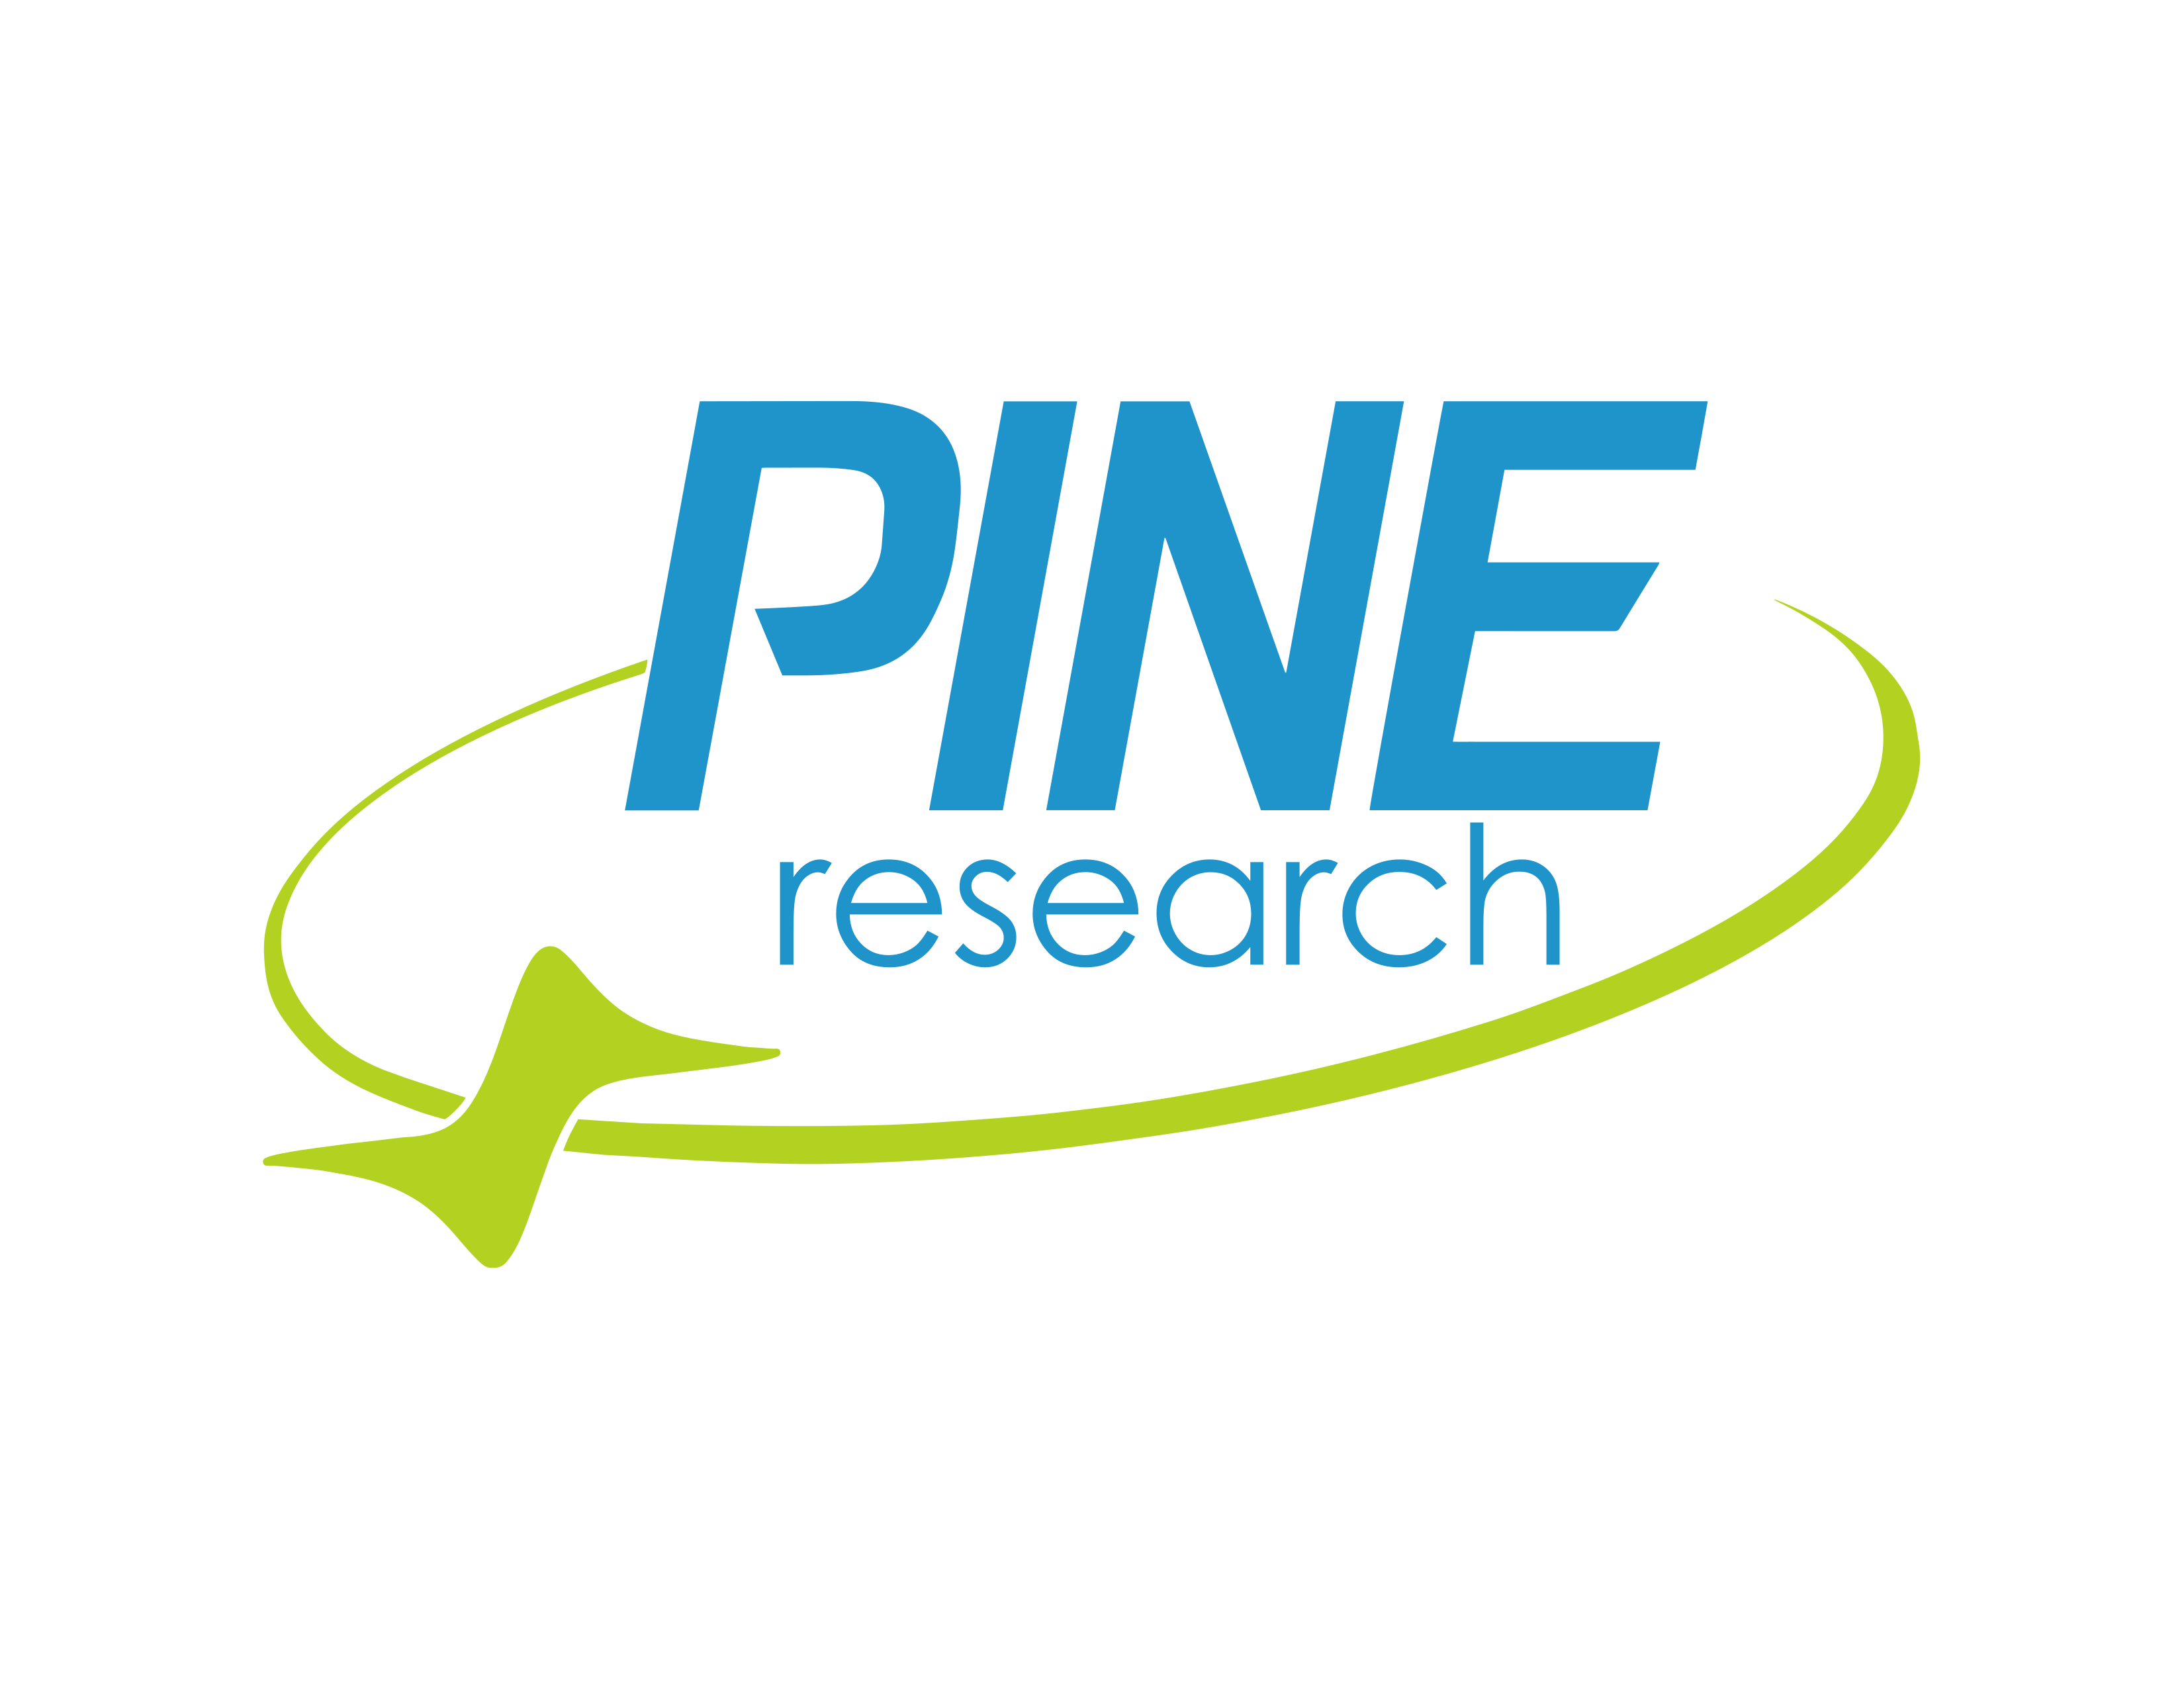 Pine Research Logo PNG